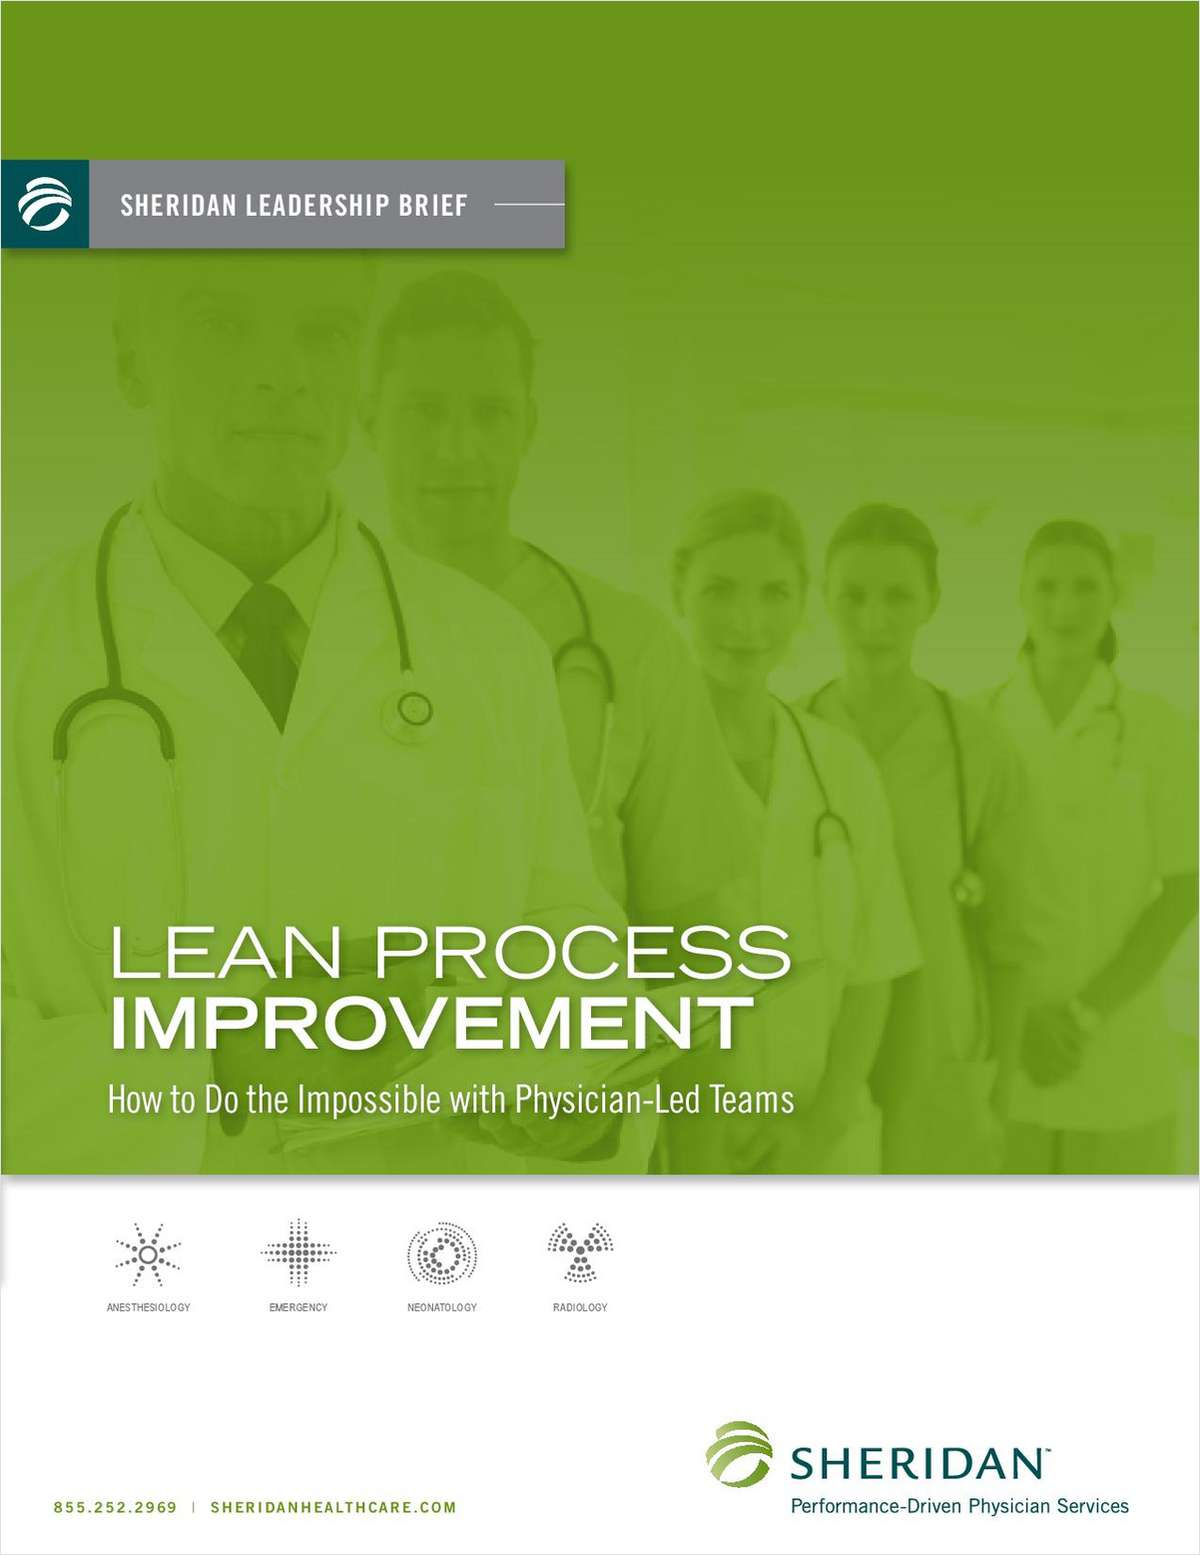 Lean Process Improvement in Hospitals: How to Do the Impossible